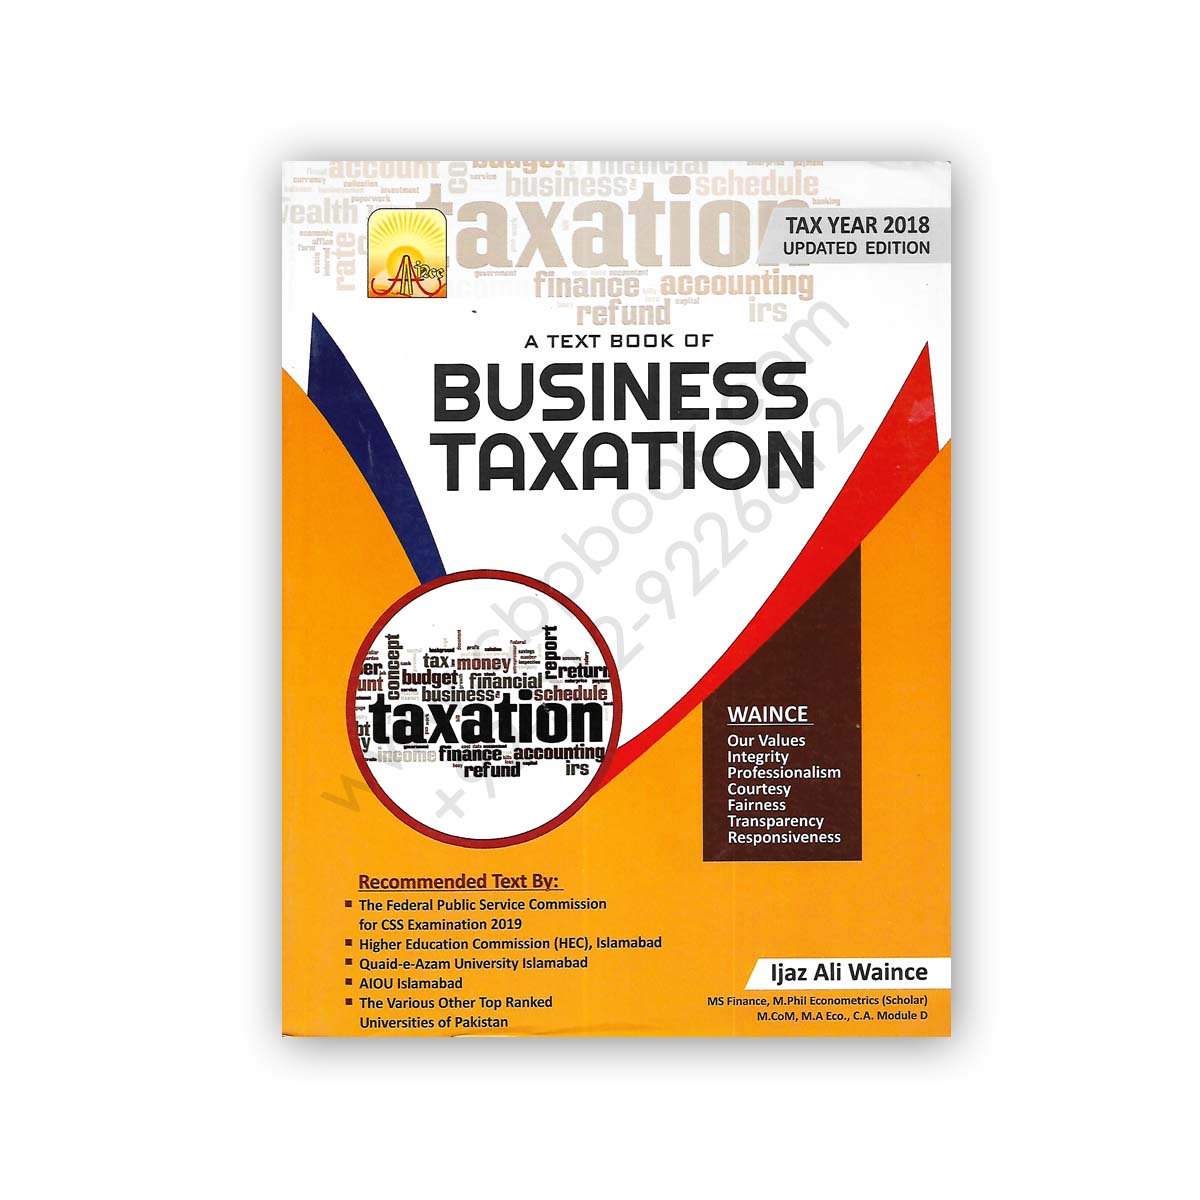 a text book of business taxation tax year 2018 by ijaz ali waince